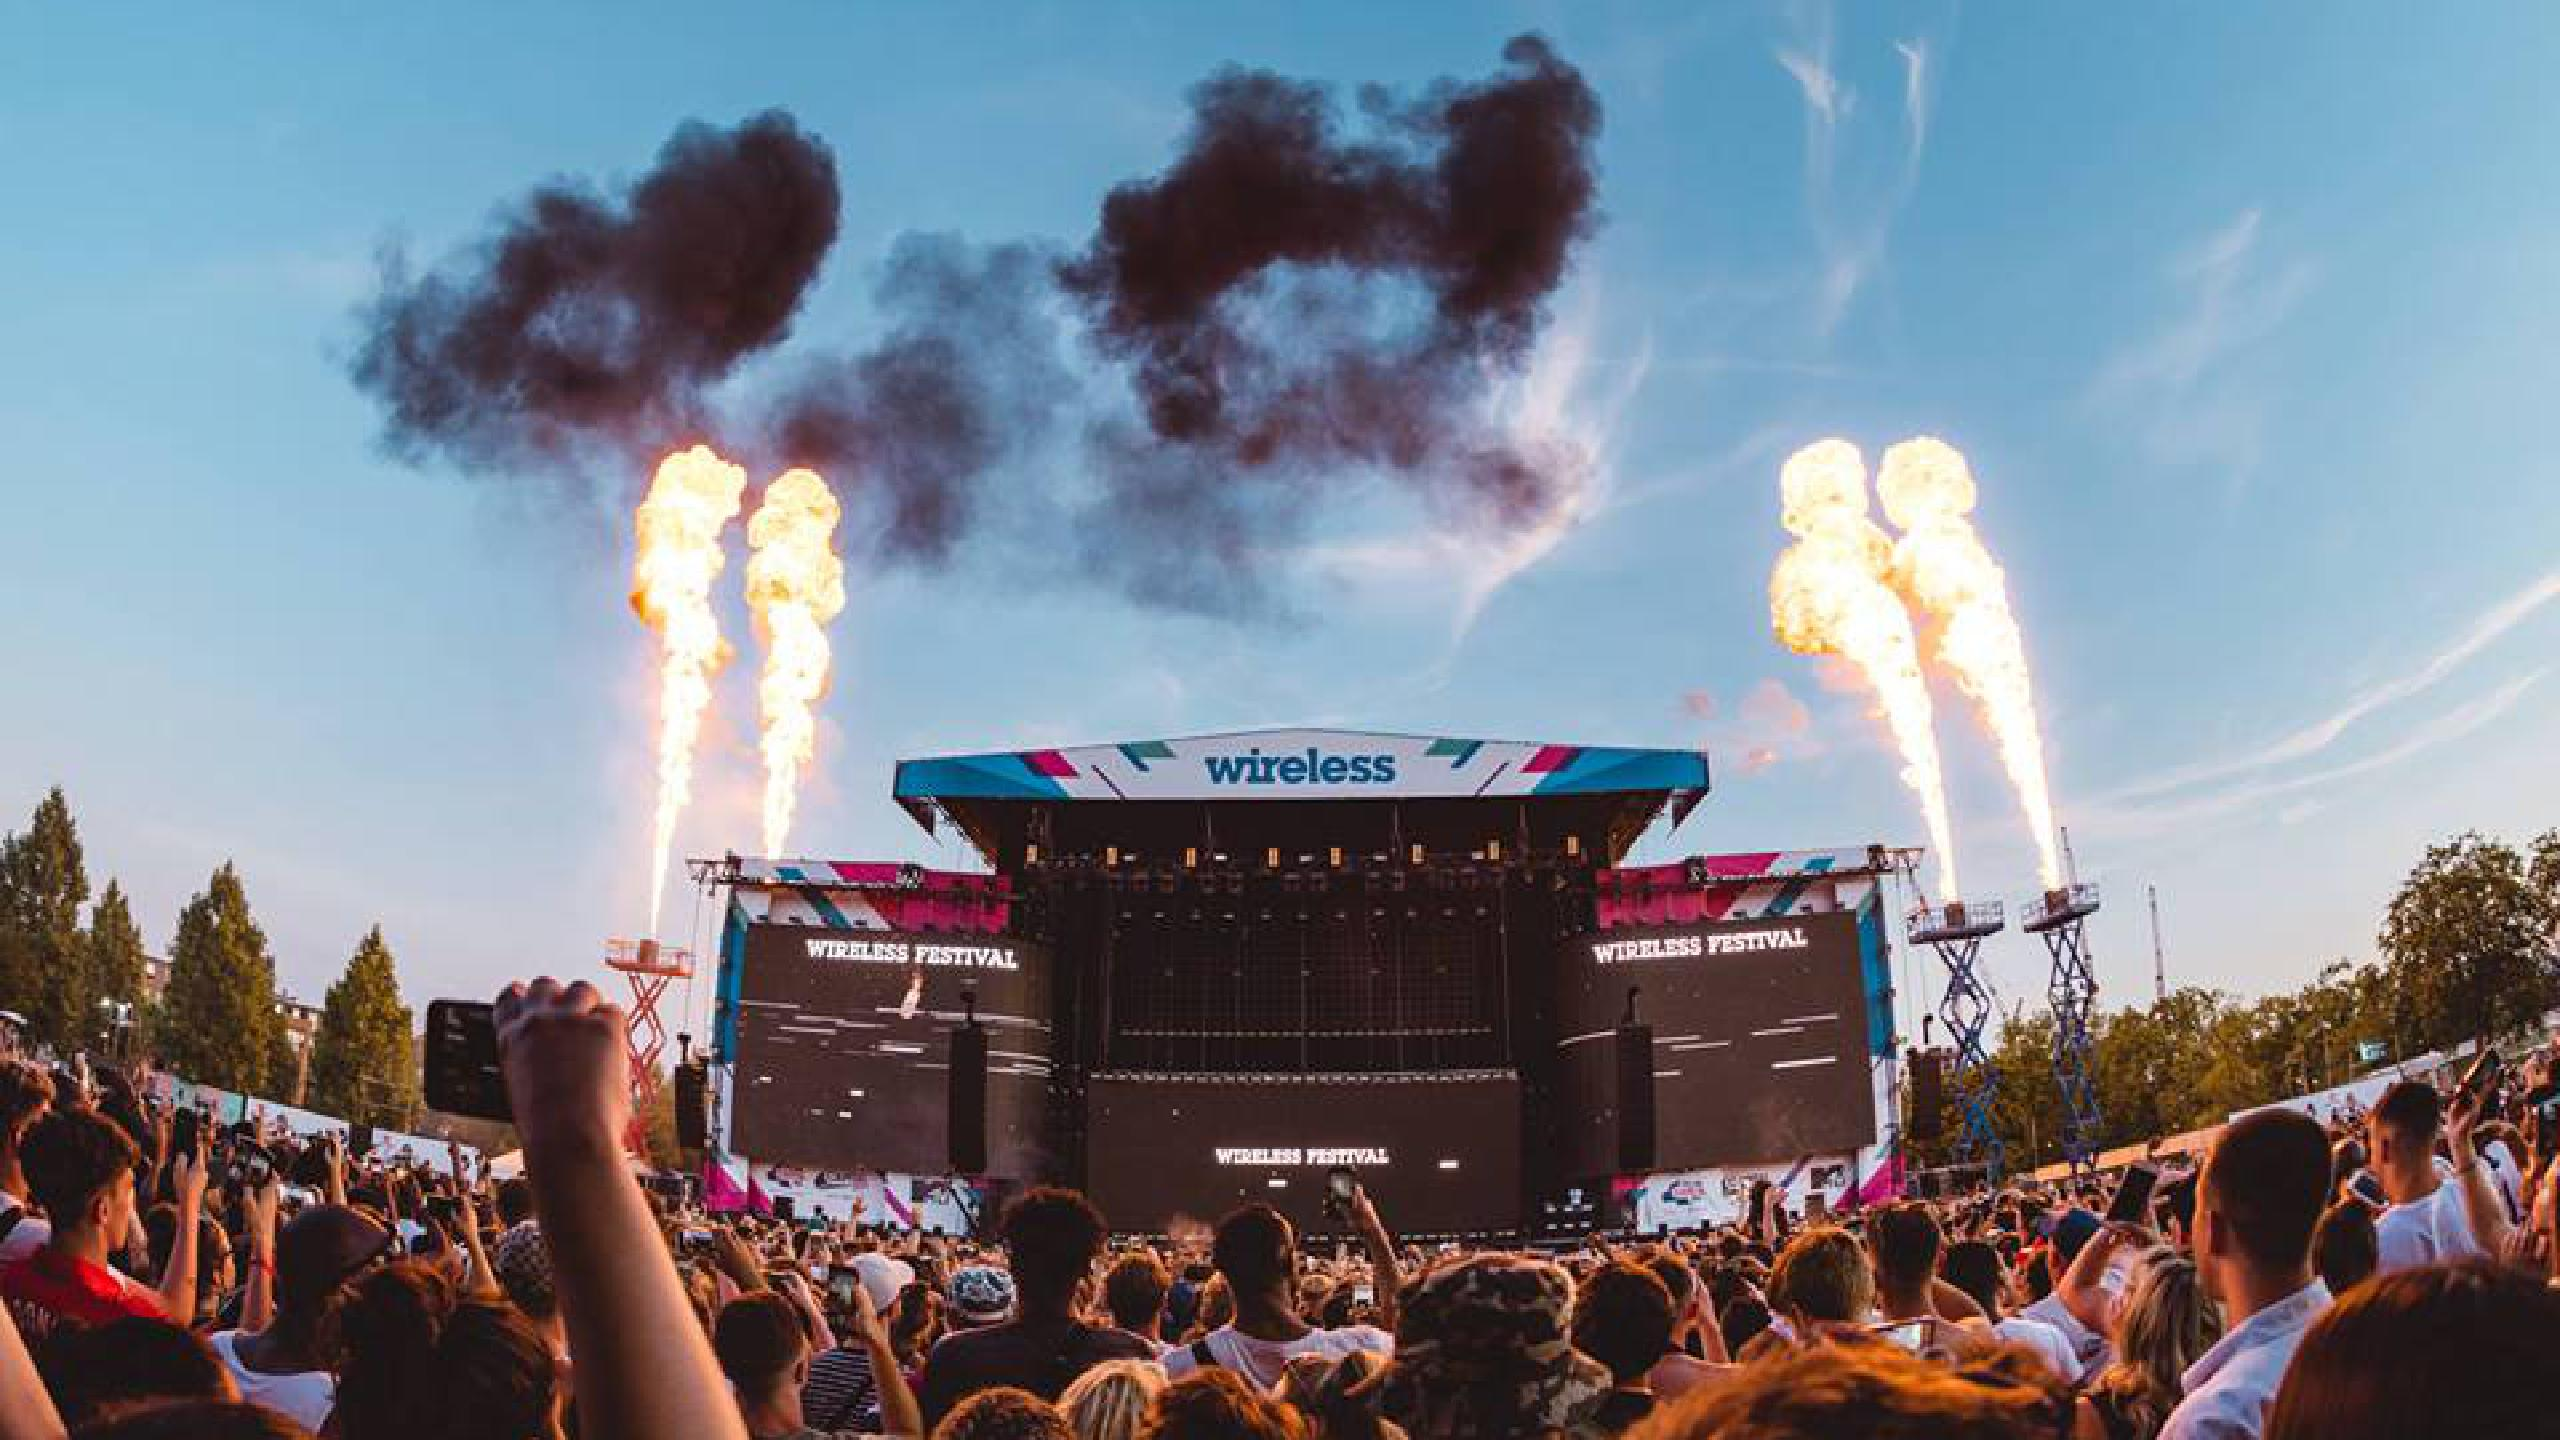 Wireless Festival London 2020  Tickets, lineup, bands for